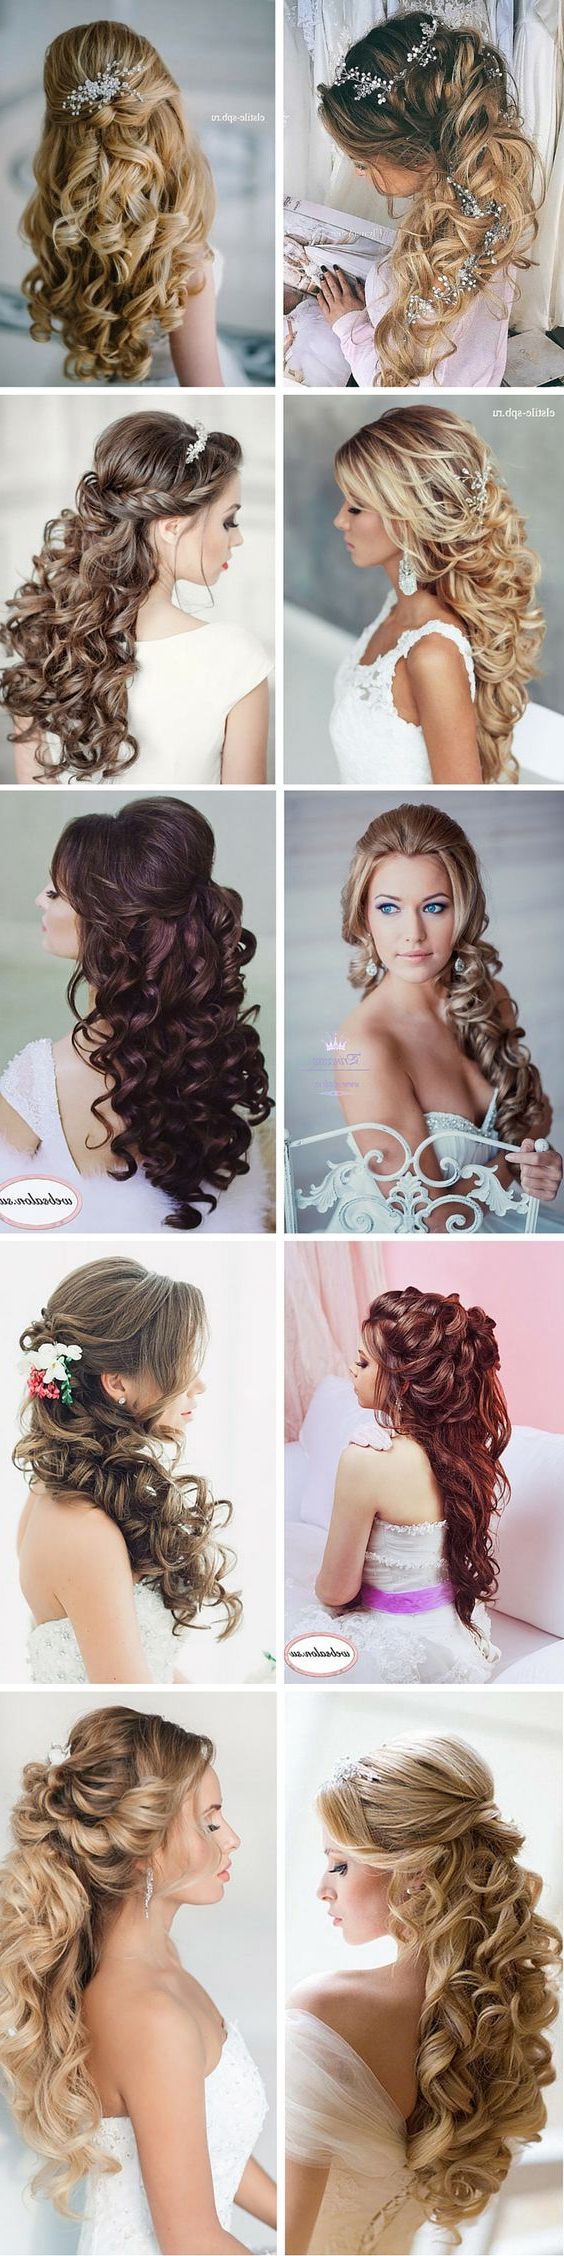 Elegant Curly Half Up Down Wedding Hairstyles